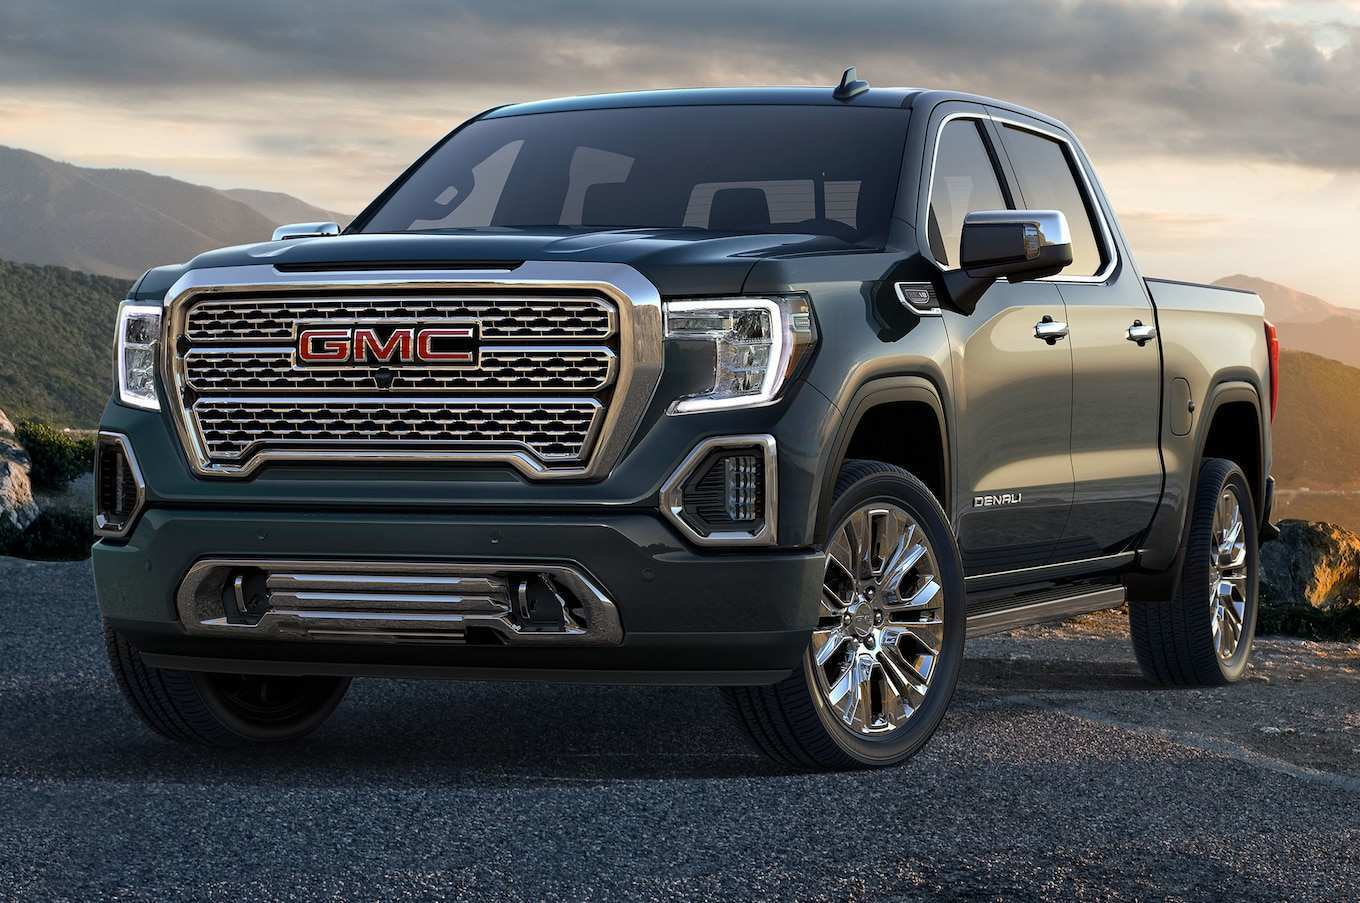 72 Concept of Best 2019 Gmc Denali Pickup Exterior And Interior Review Redesign and Concept by Best 2019 Gmc Denali Pickup Exterior And Interior Review